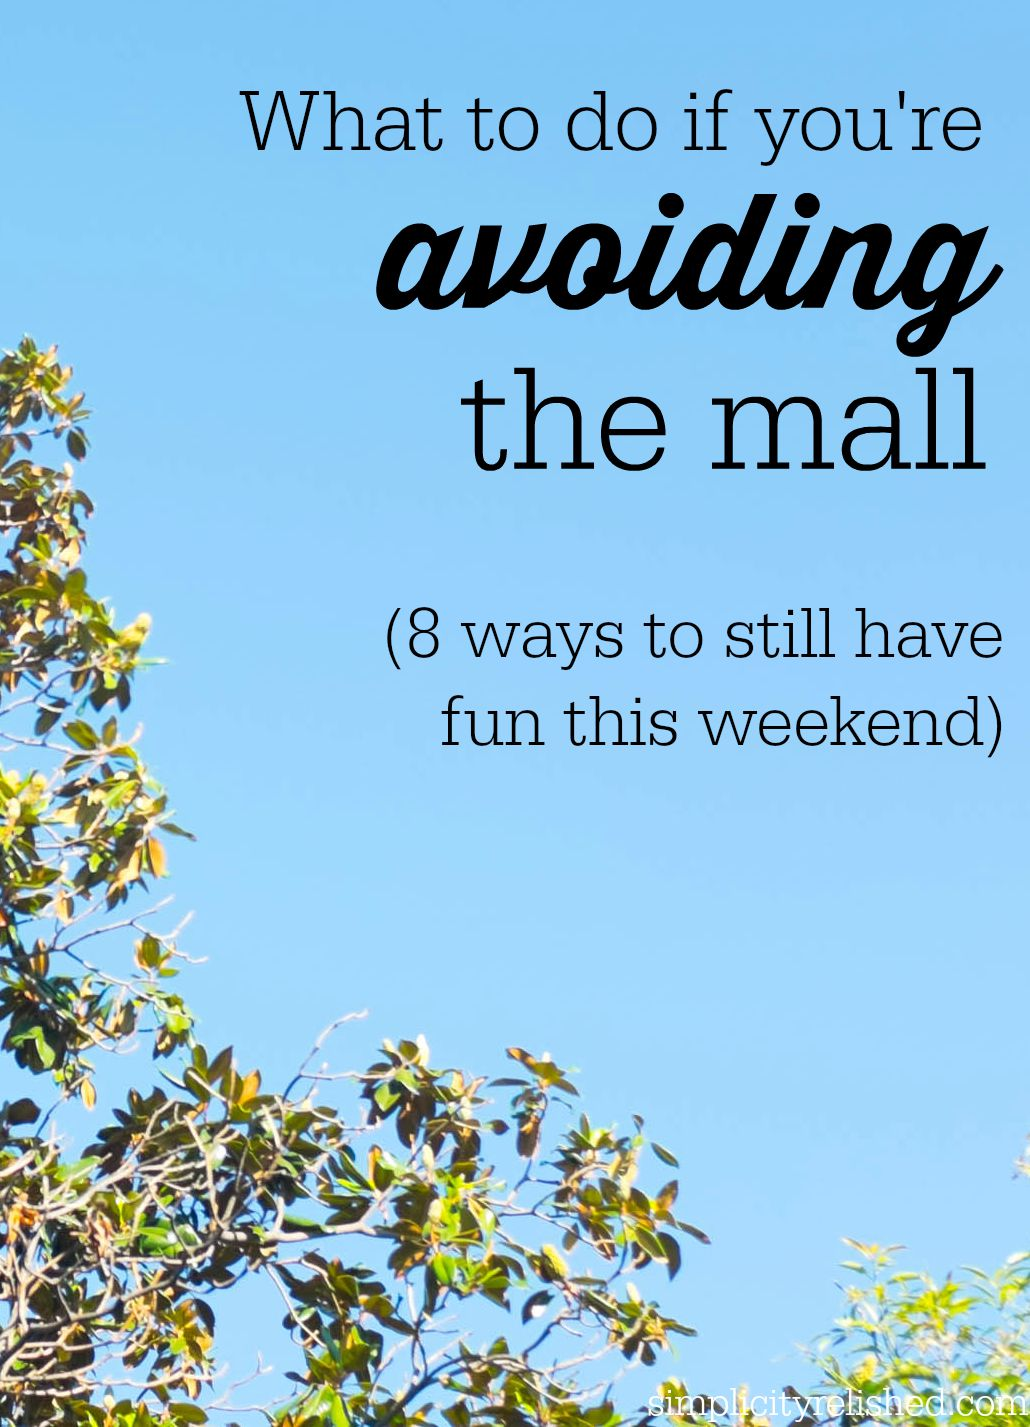 What to do on the weekend 44